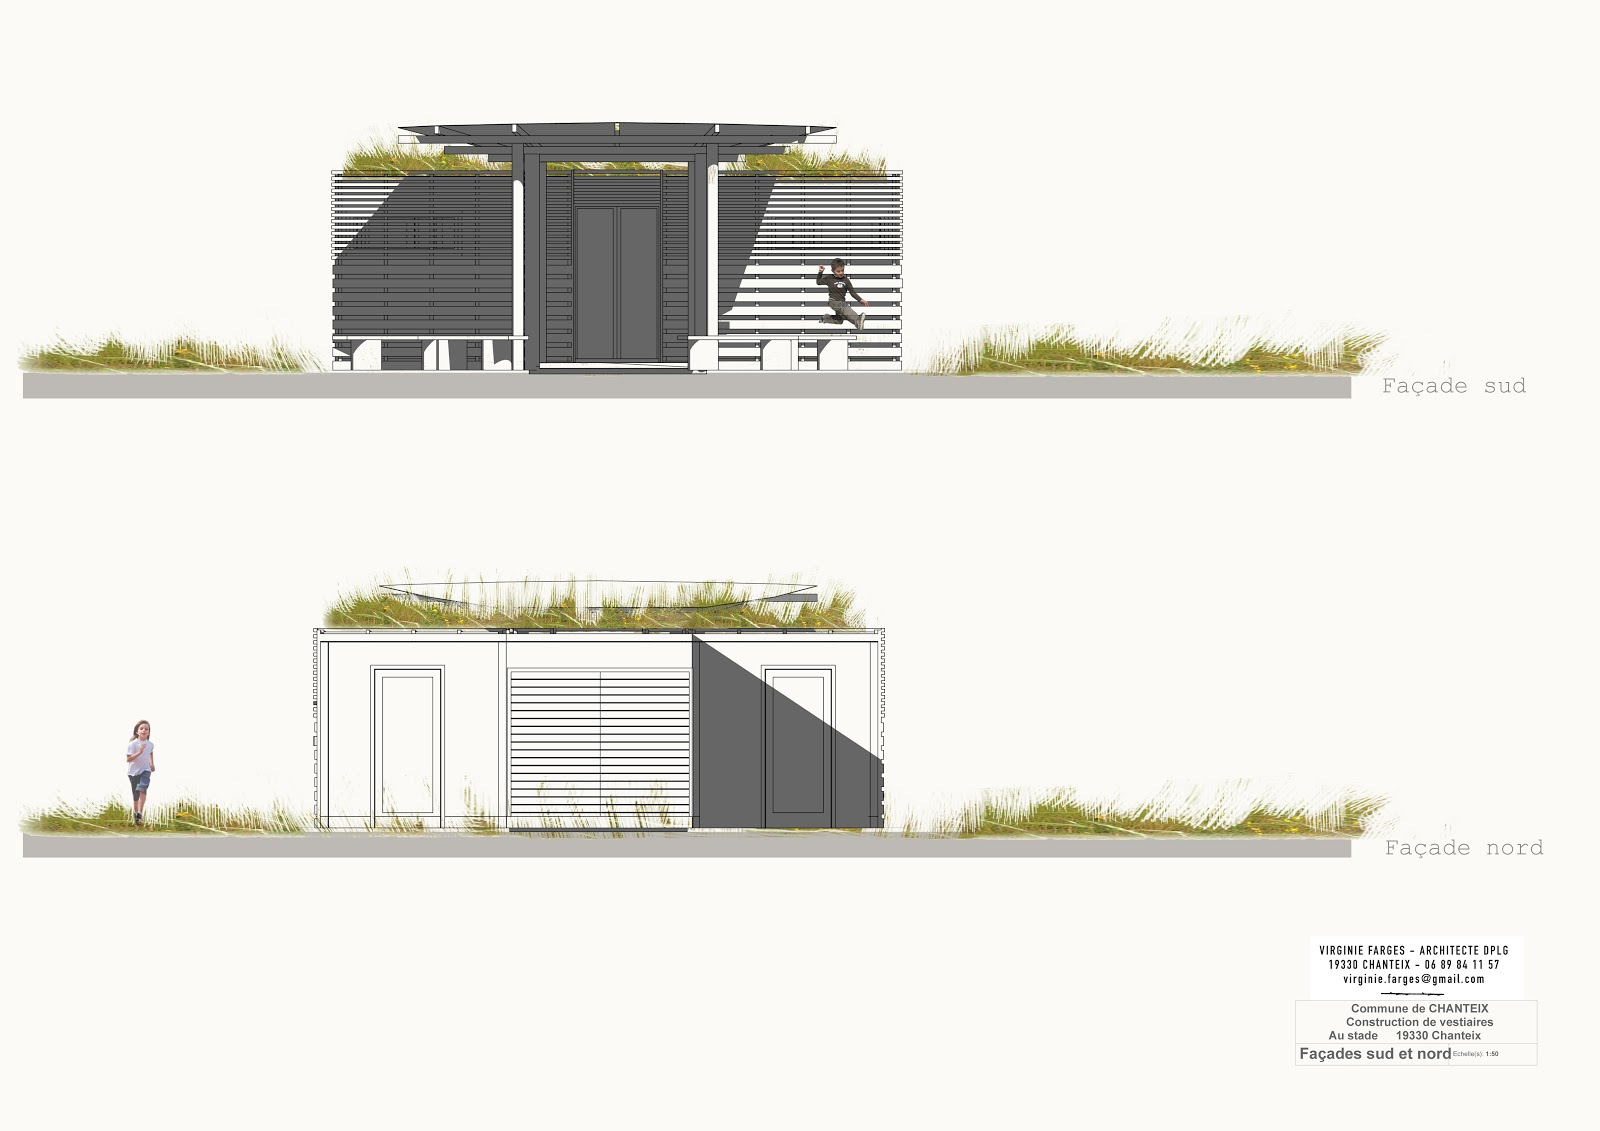 Virginie farges architecture cologique corr ze limousin for Architecture ecologique